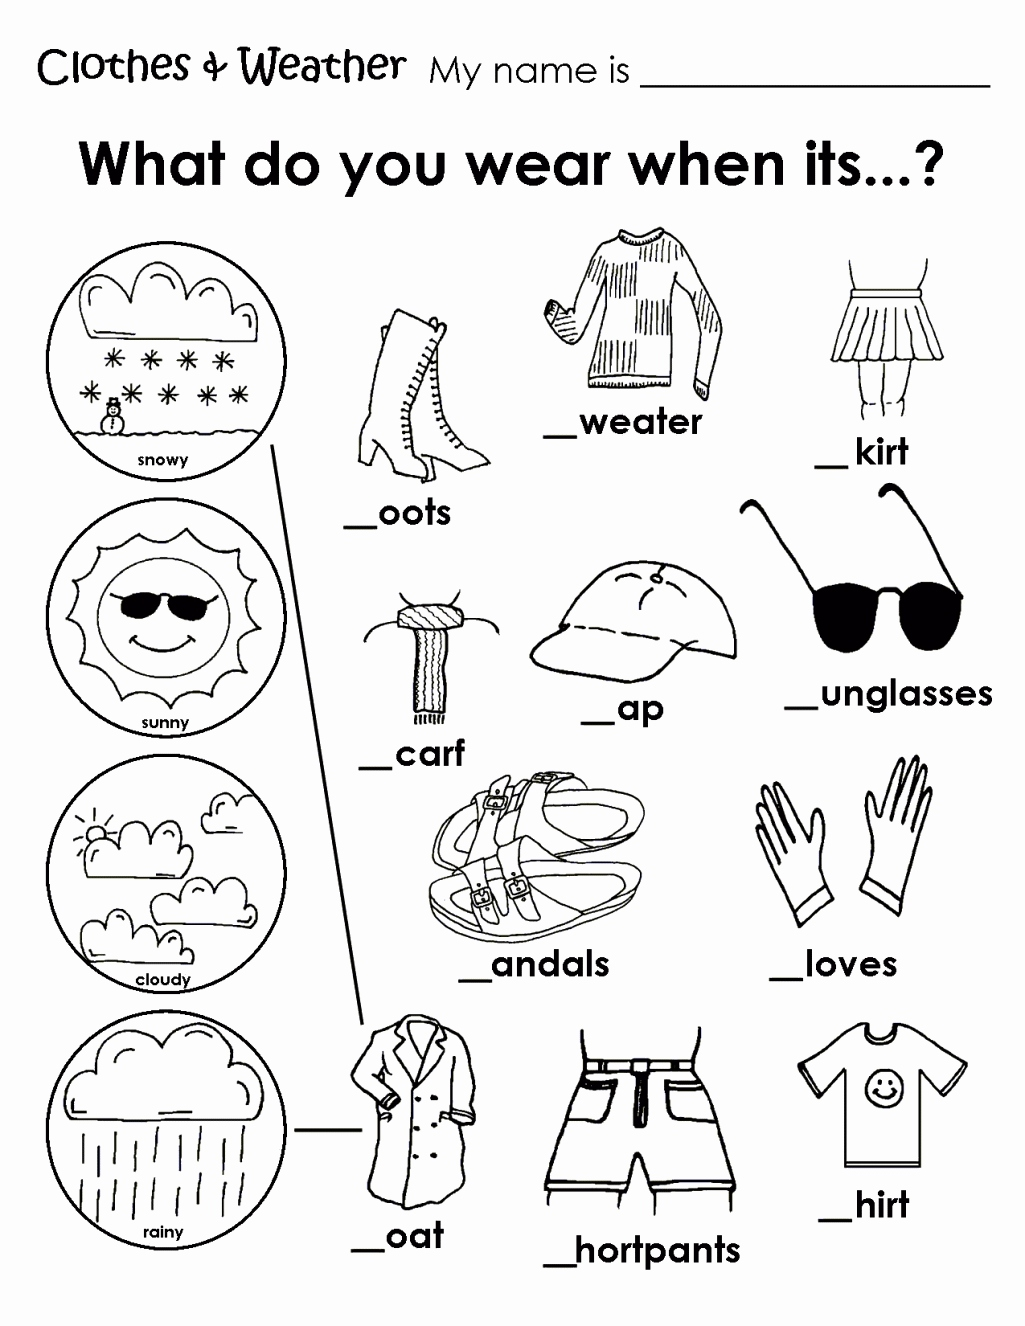 1025x1326 Weather Coloring Pages Pics Free Coloring Pages Clothing Worksheet